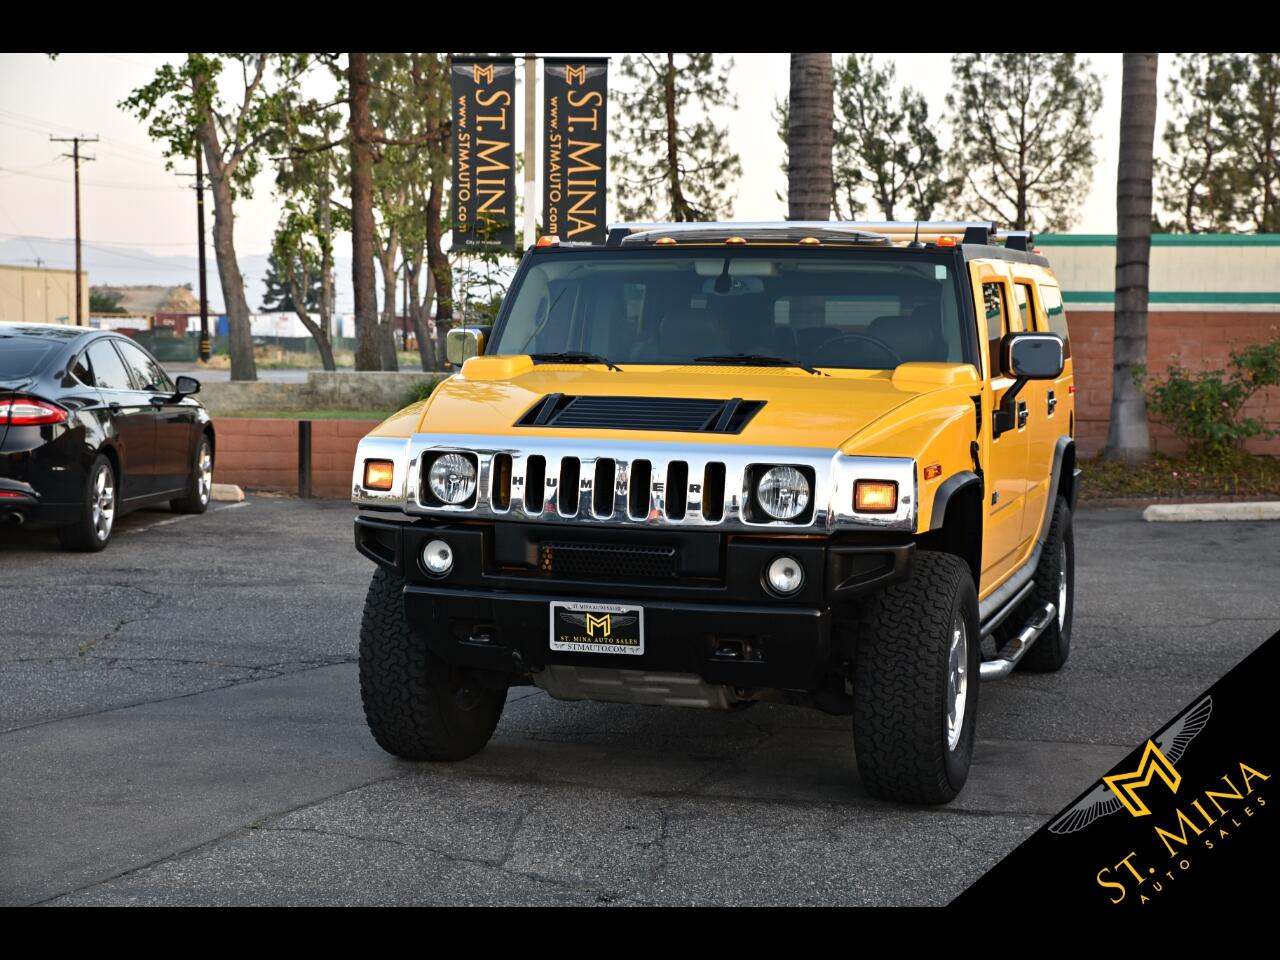 2004 HUMMER H2 Luxury Utility